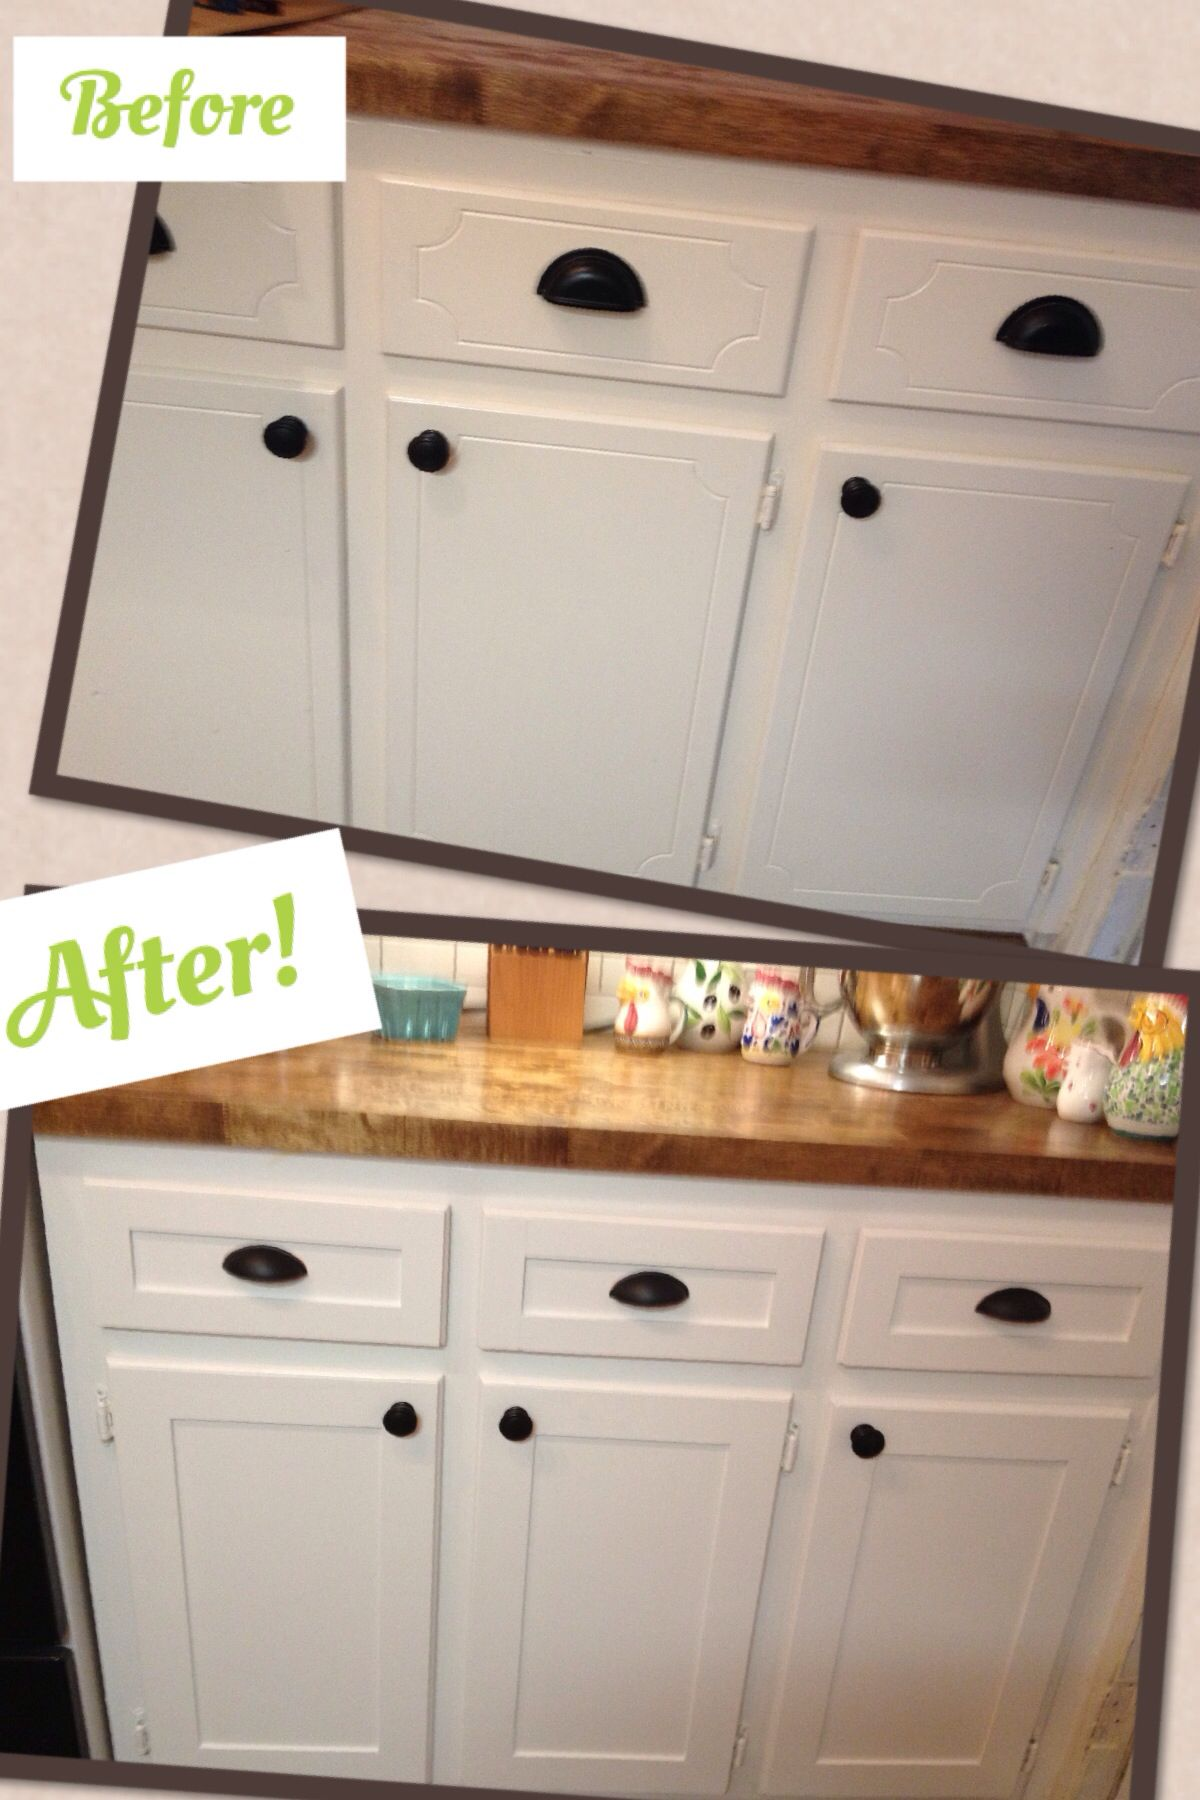 Diy Reface Kitchen Cabinets Kitchen Cabinet Refacing Project Diy Shaker Trim Done